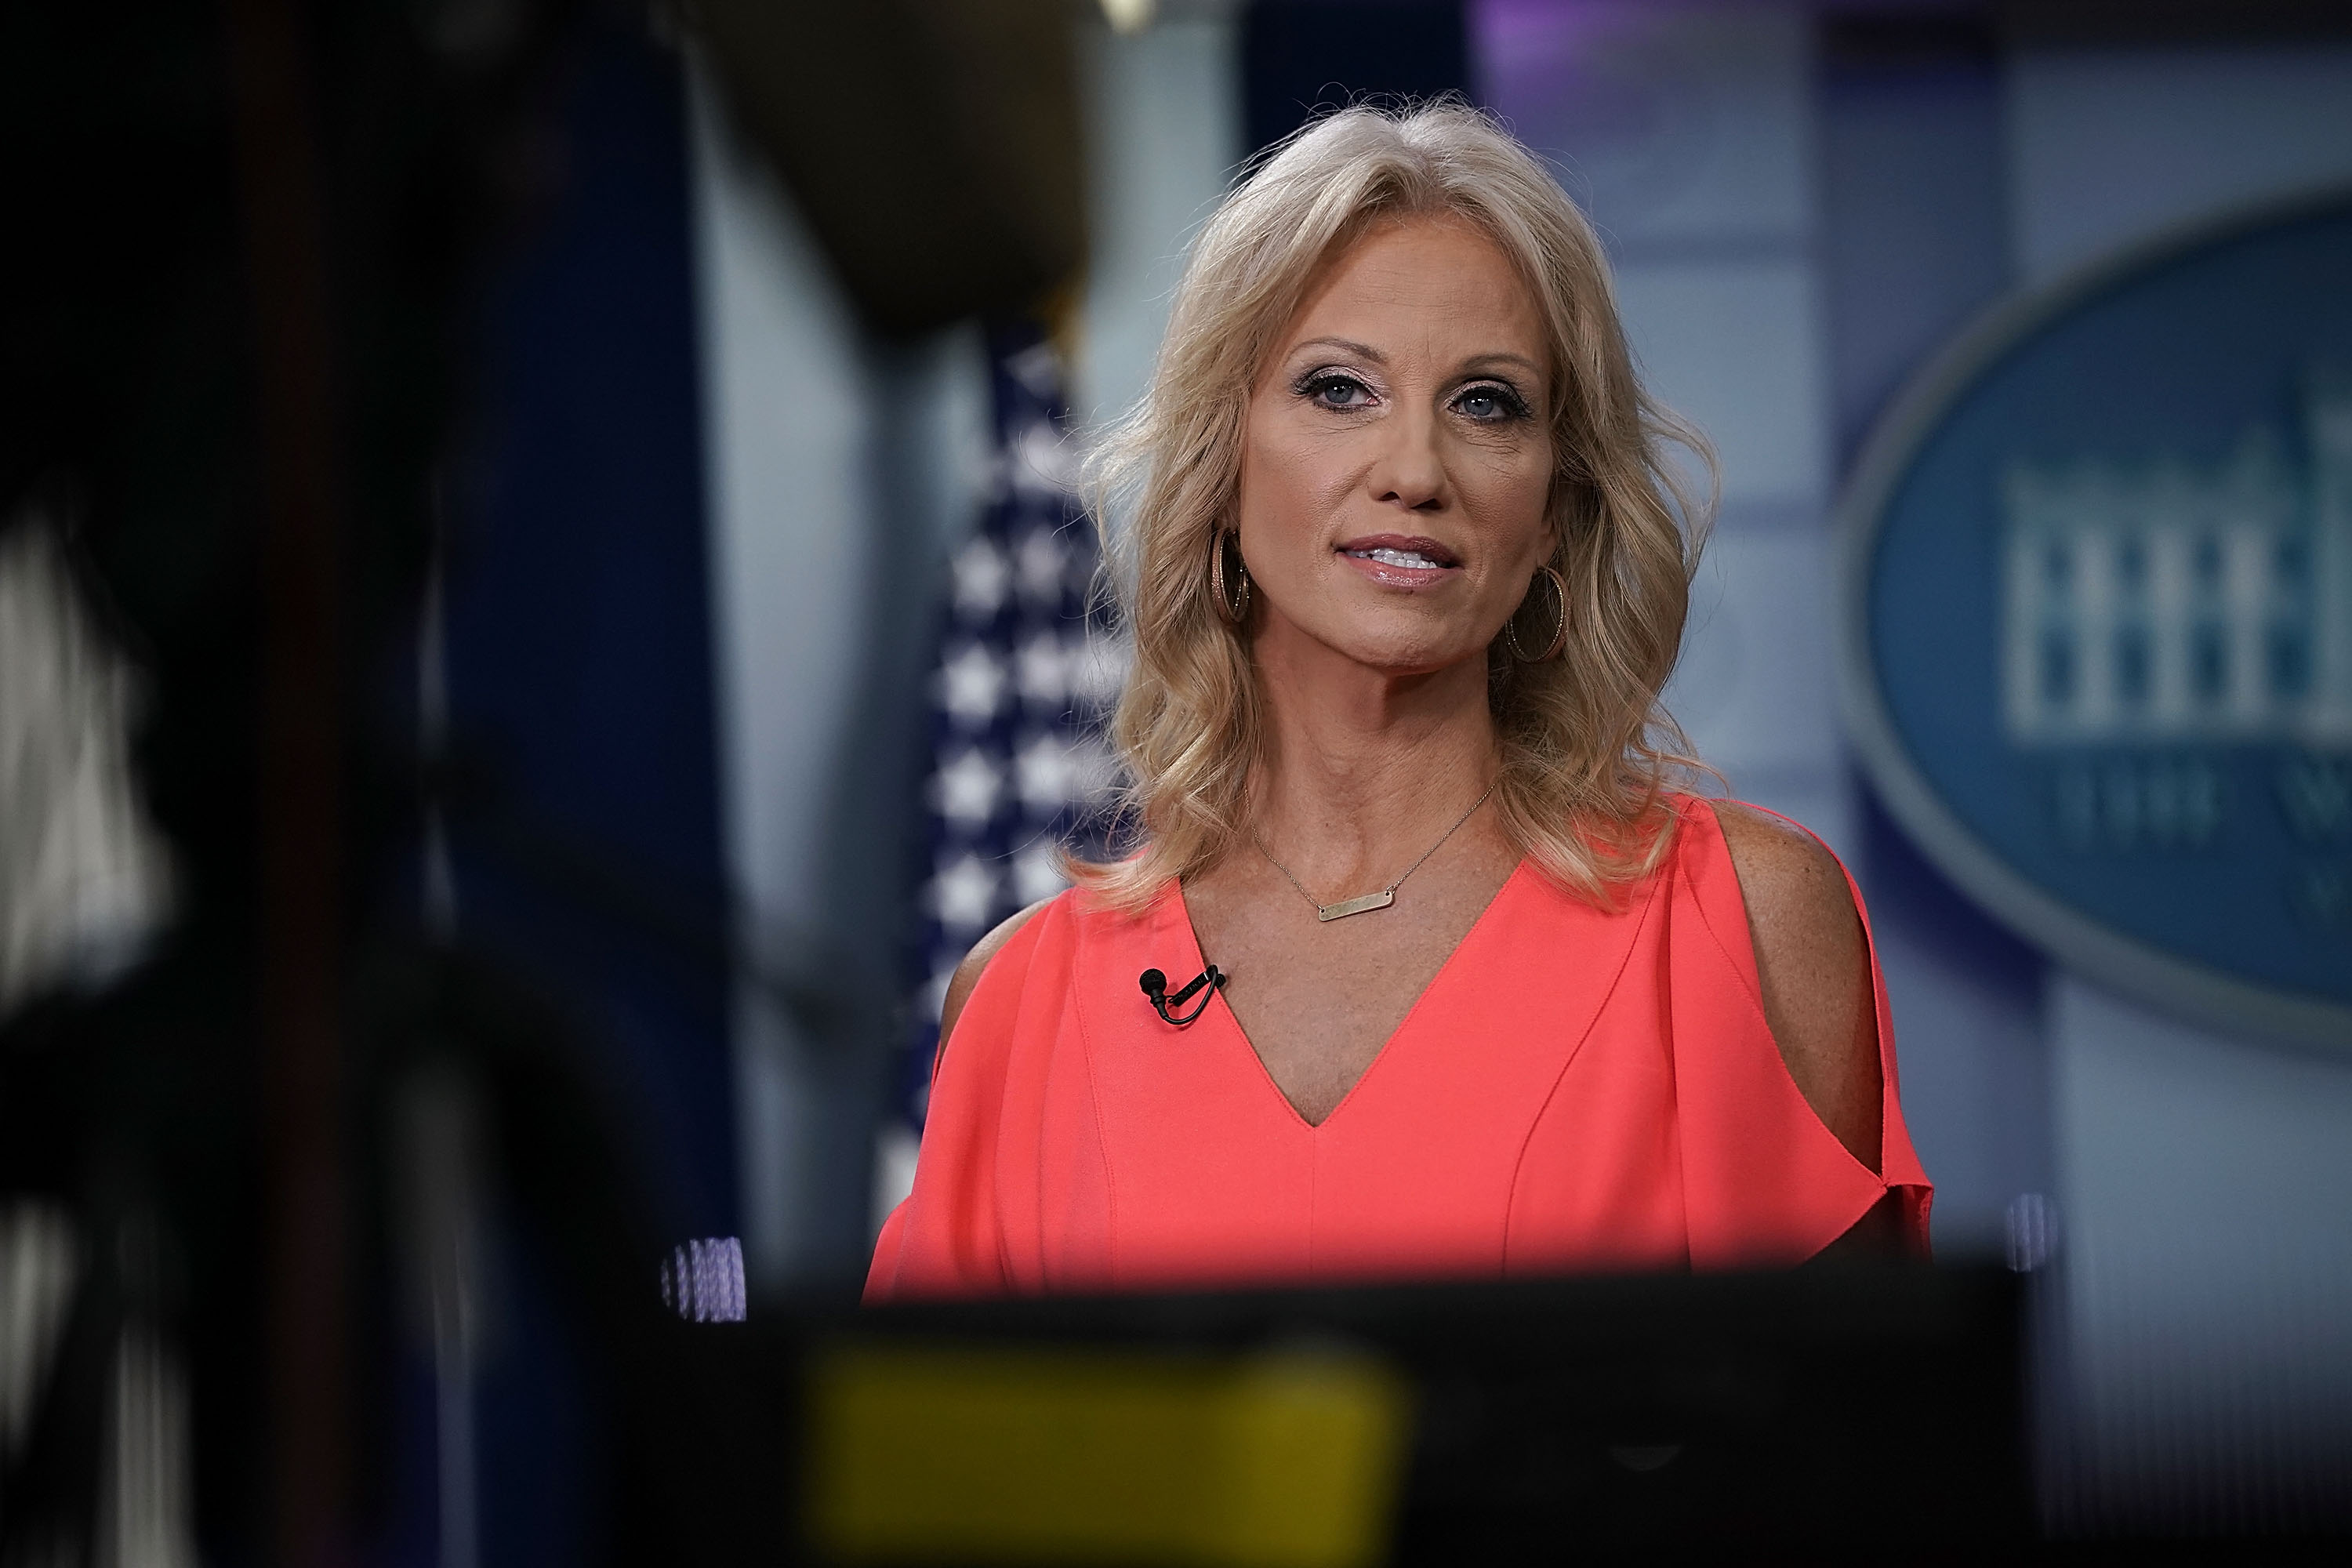 Counselor to U.S. President Donald Trump Kellyanne Conway speaks during an interview with Fox News Channel at the James Brady Press Briefing Room of the White House August 21, 2018 in Washington, DC.